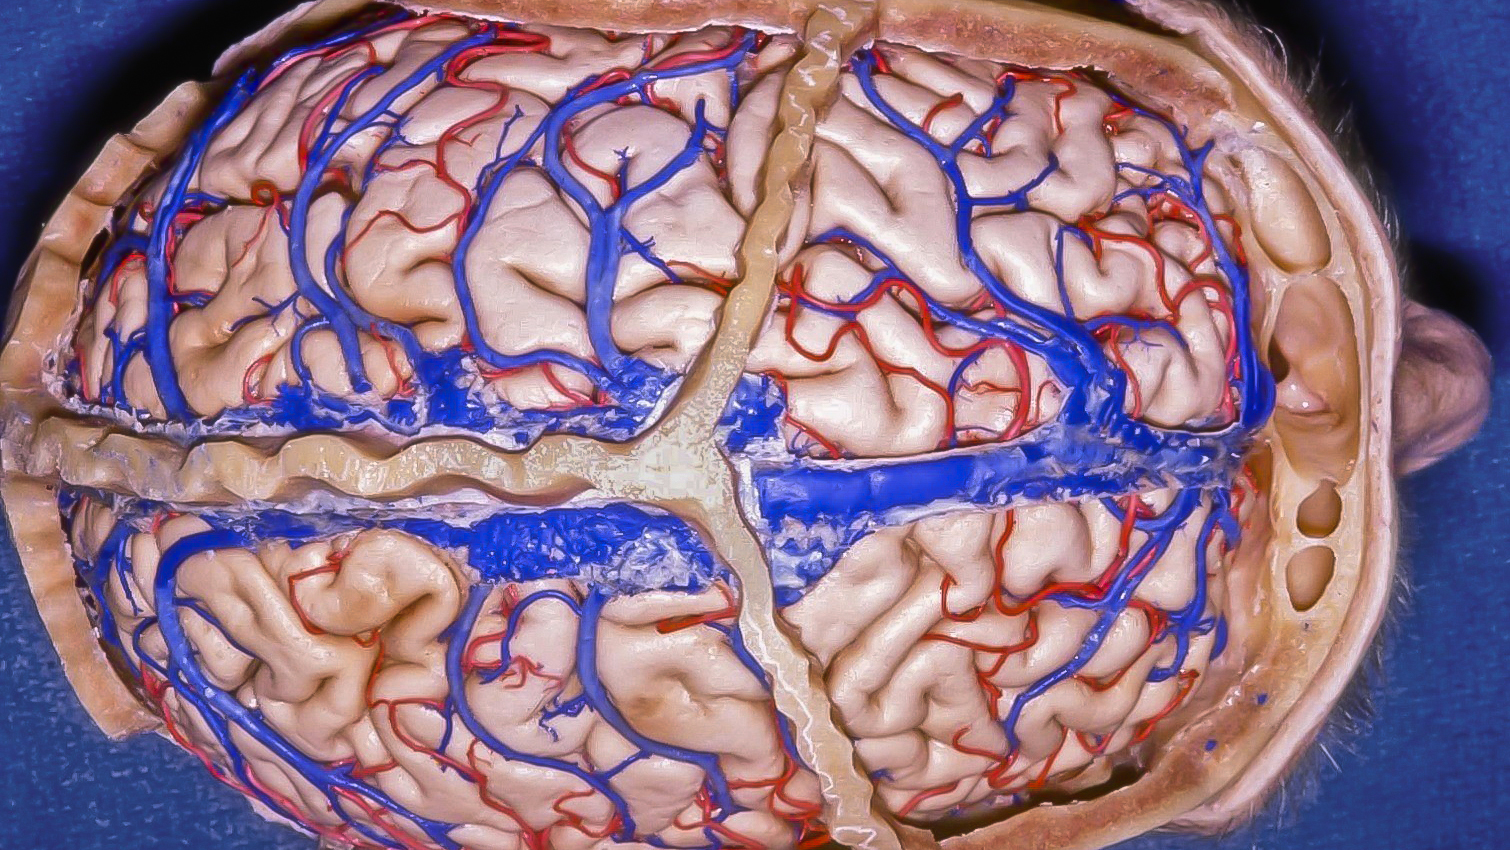 Figure 1: The location of the coronal sutures in relation to the underlying frontal lobe is demonstrated. The parasagittal veins anterior to this suture are relatively dispensable. The extent of lobectomy should not reach posterior to the coronal suture as  the motor cortex is about 3cm behind the suture  (image courtesy of AL Rhoton, Jr).